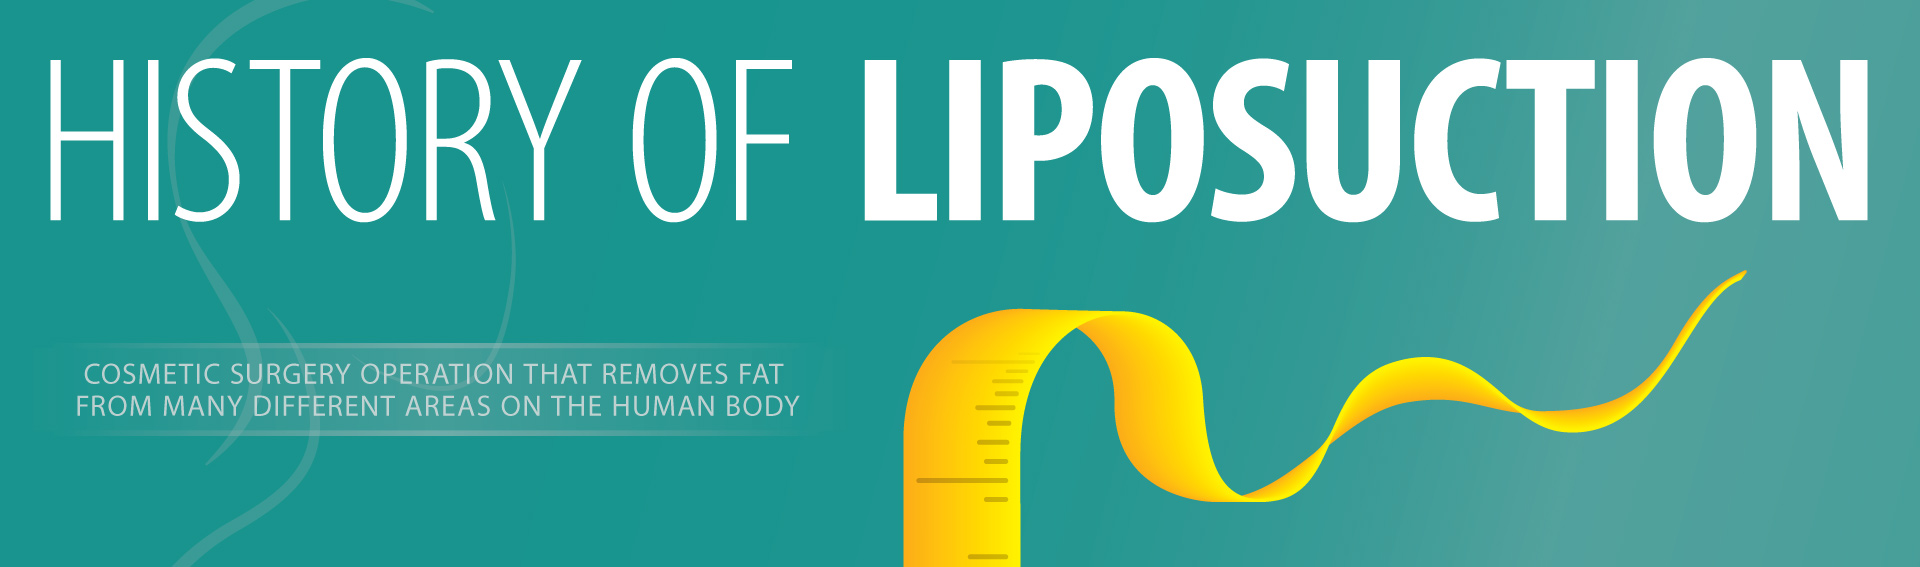 a history of liposuction The body-jet liposuction uses a refined water technology to remove fat the removal of fat with water technology was developed in response to the earlier, more invasive liposuction procedures.